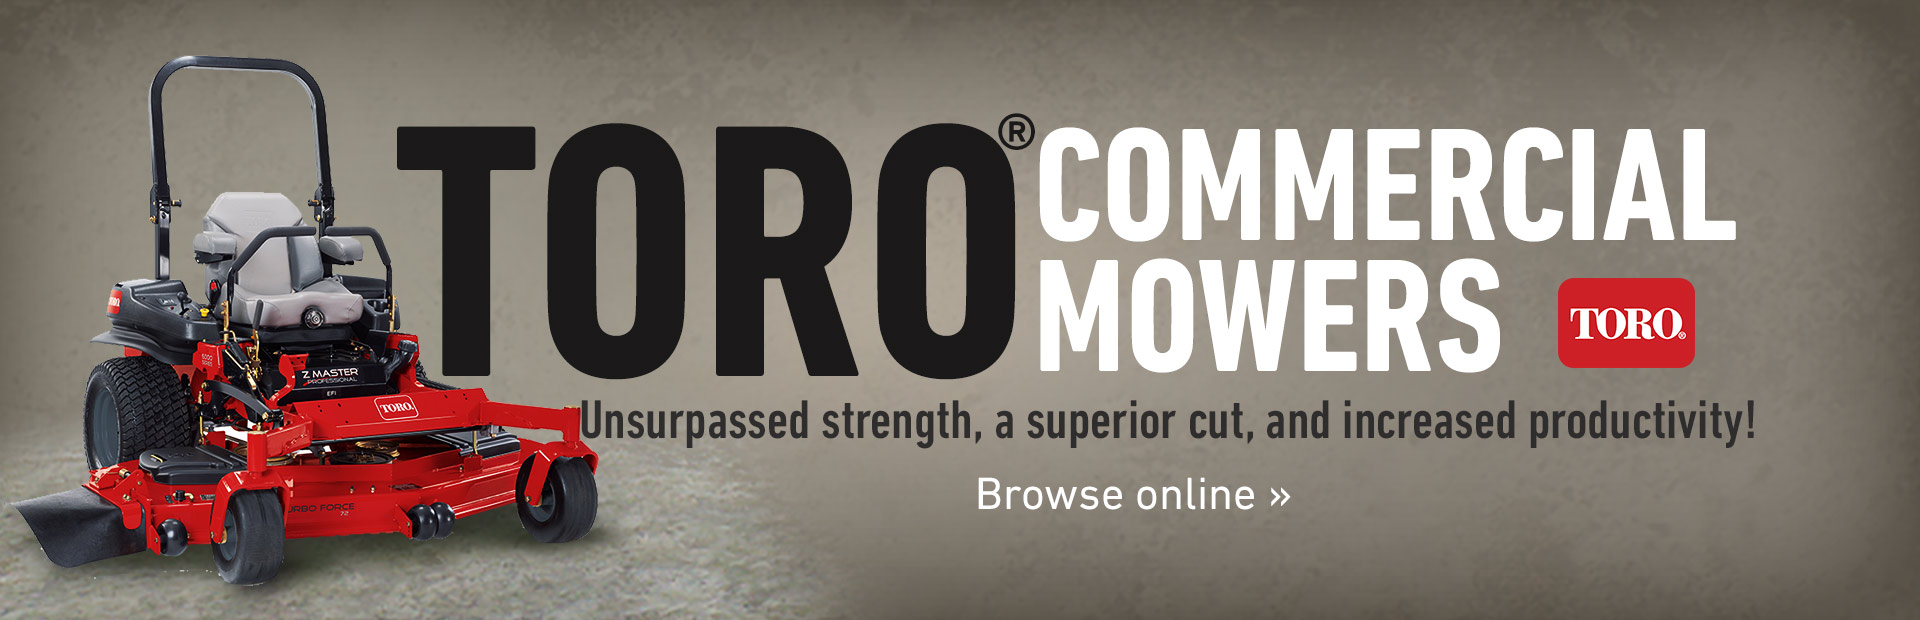 Click here to view Toro commercial mowers!